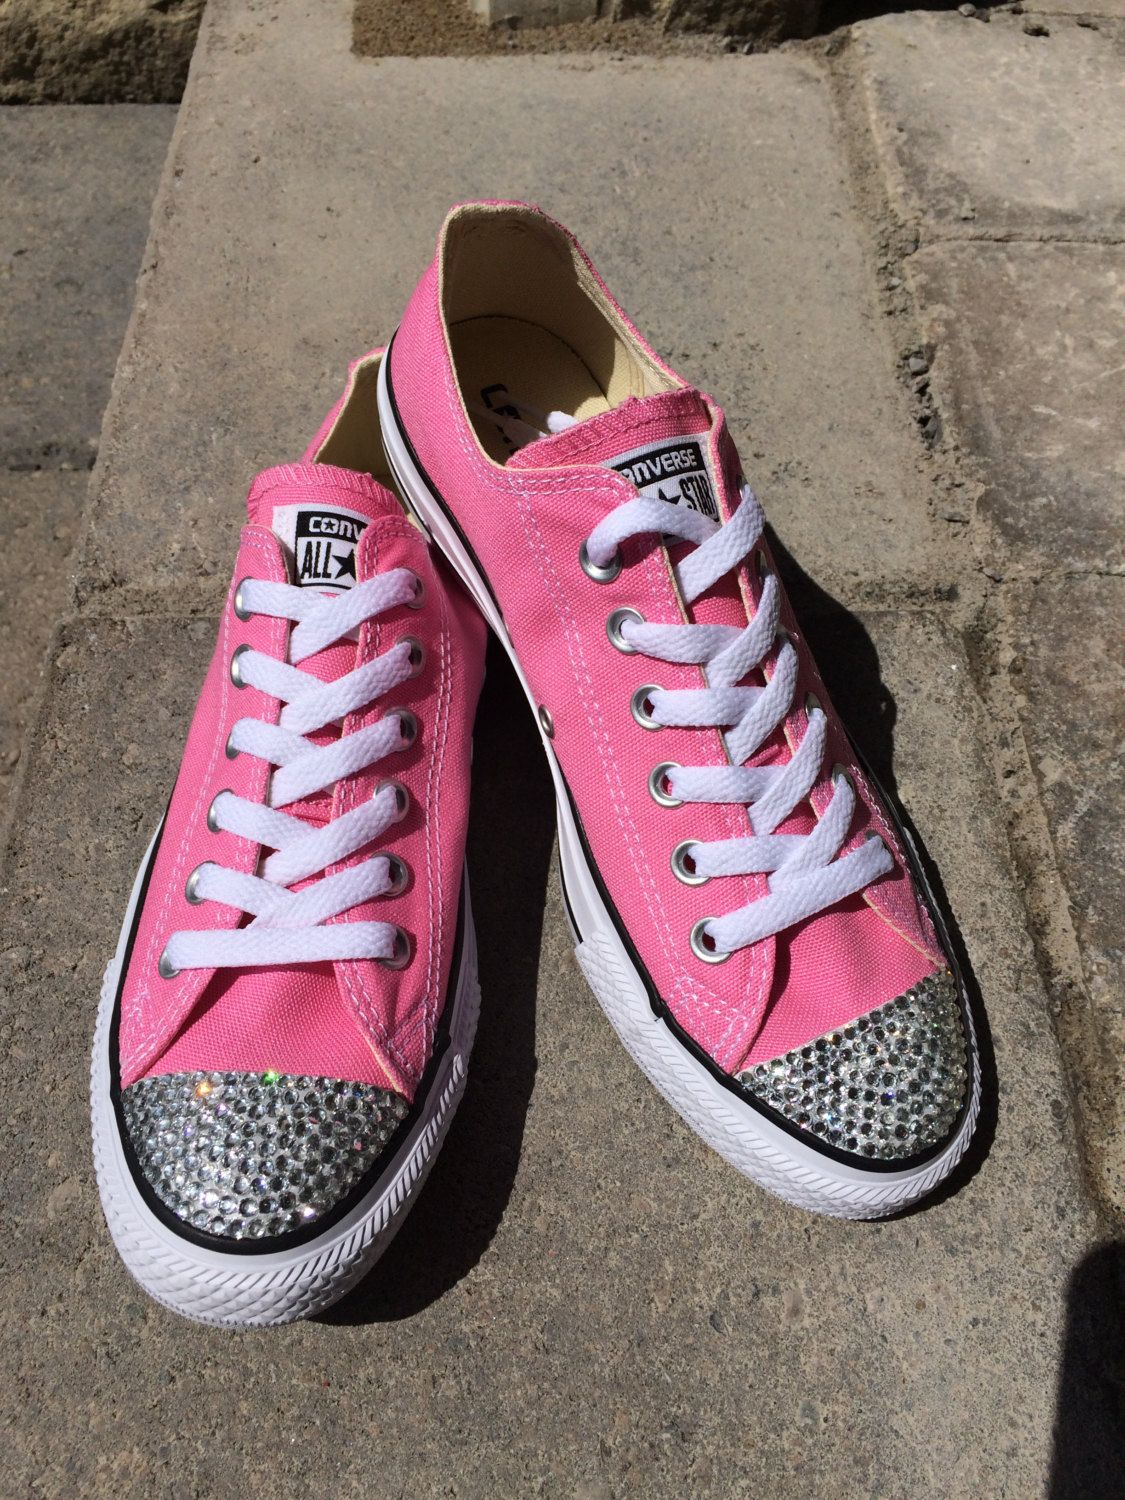 Low Top Pink Blinged Converse Shoes. For Weddings, Brides ...